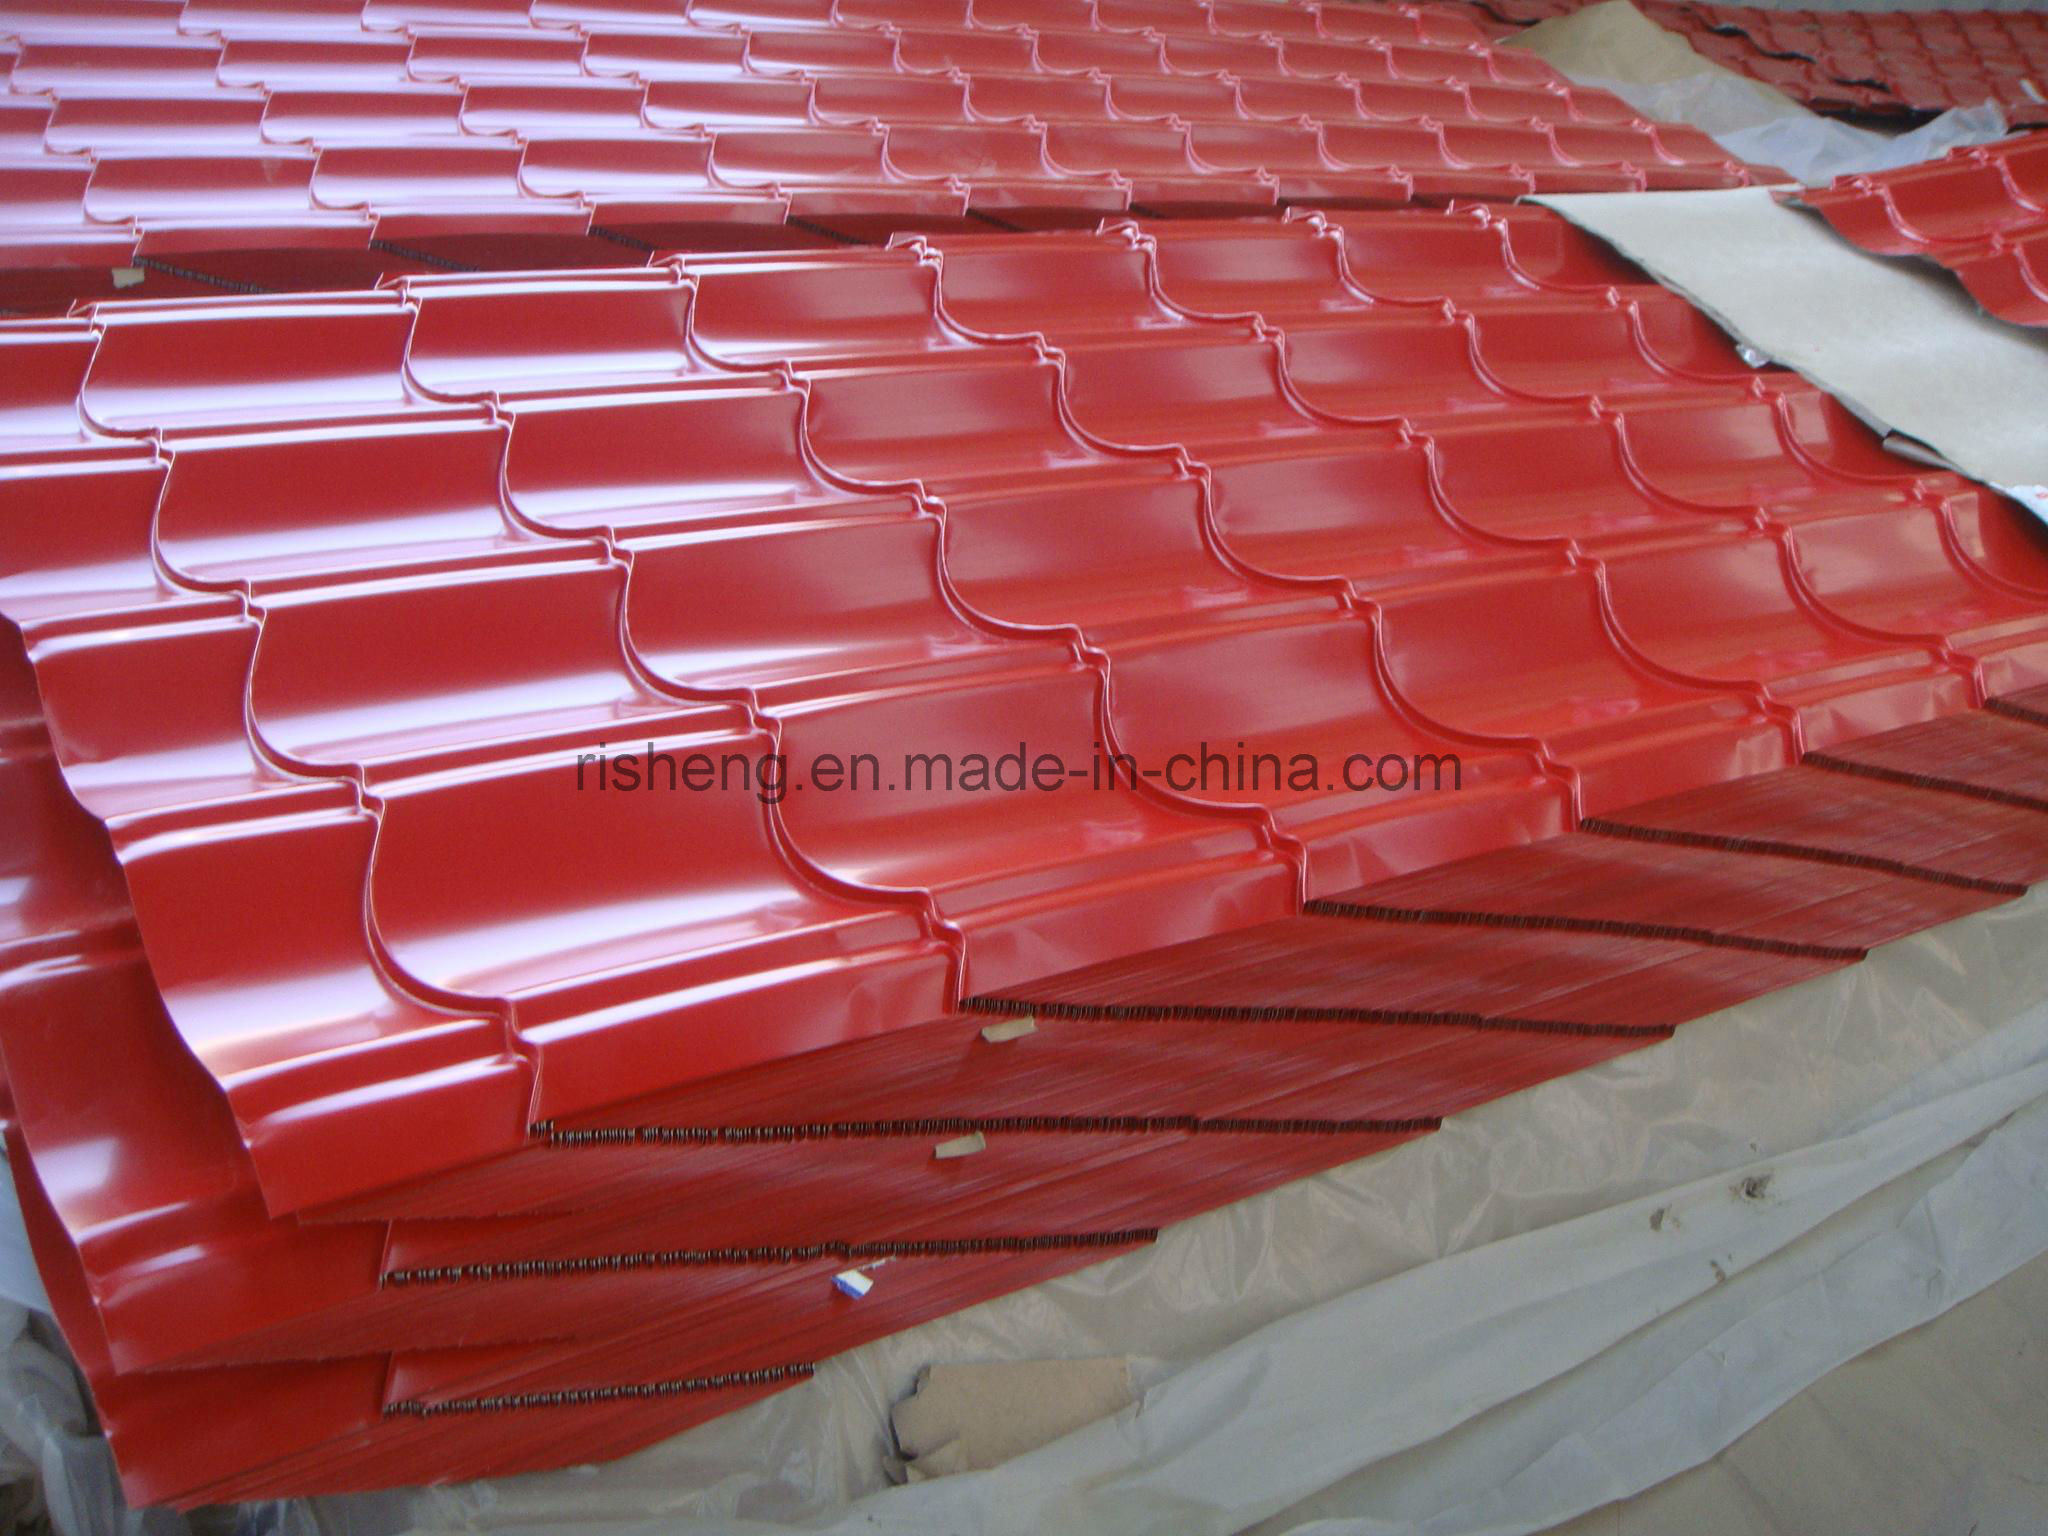 Hot DIP Galvanized Steel Roofing Tiles